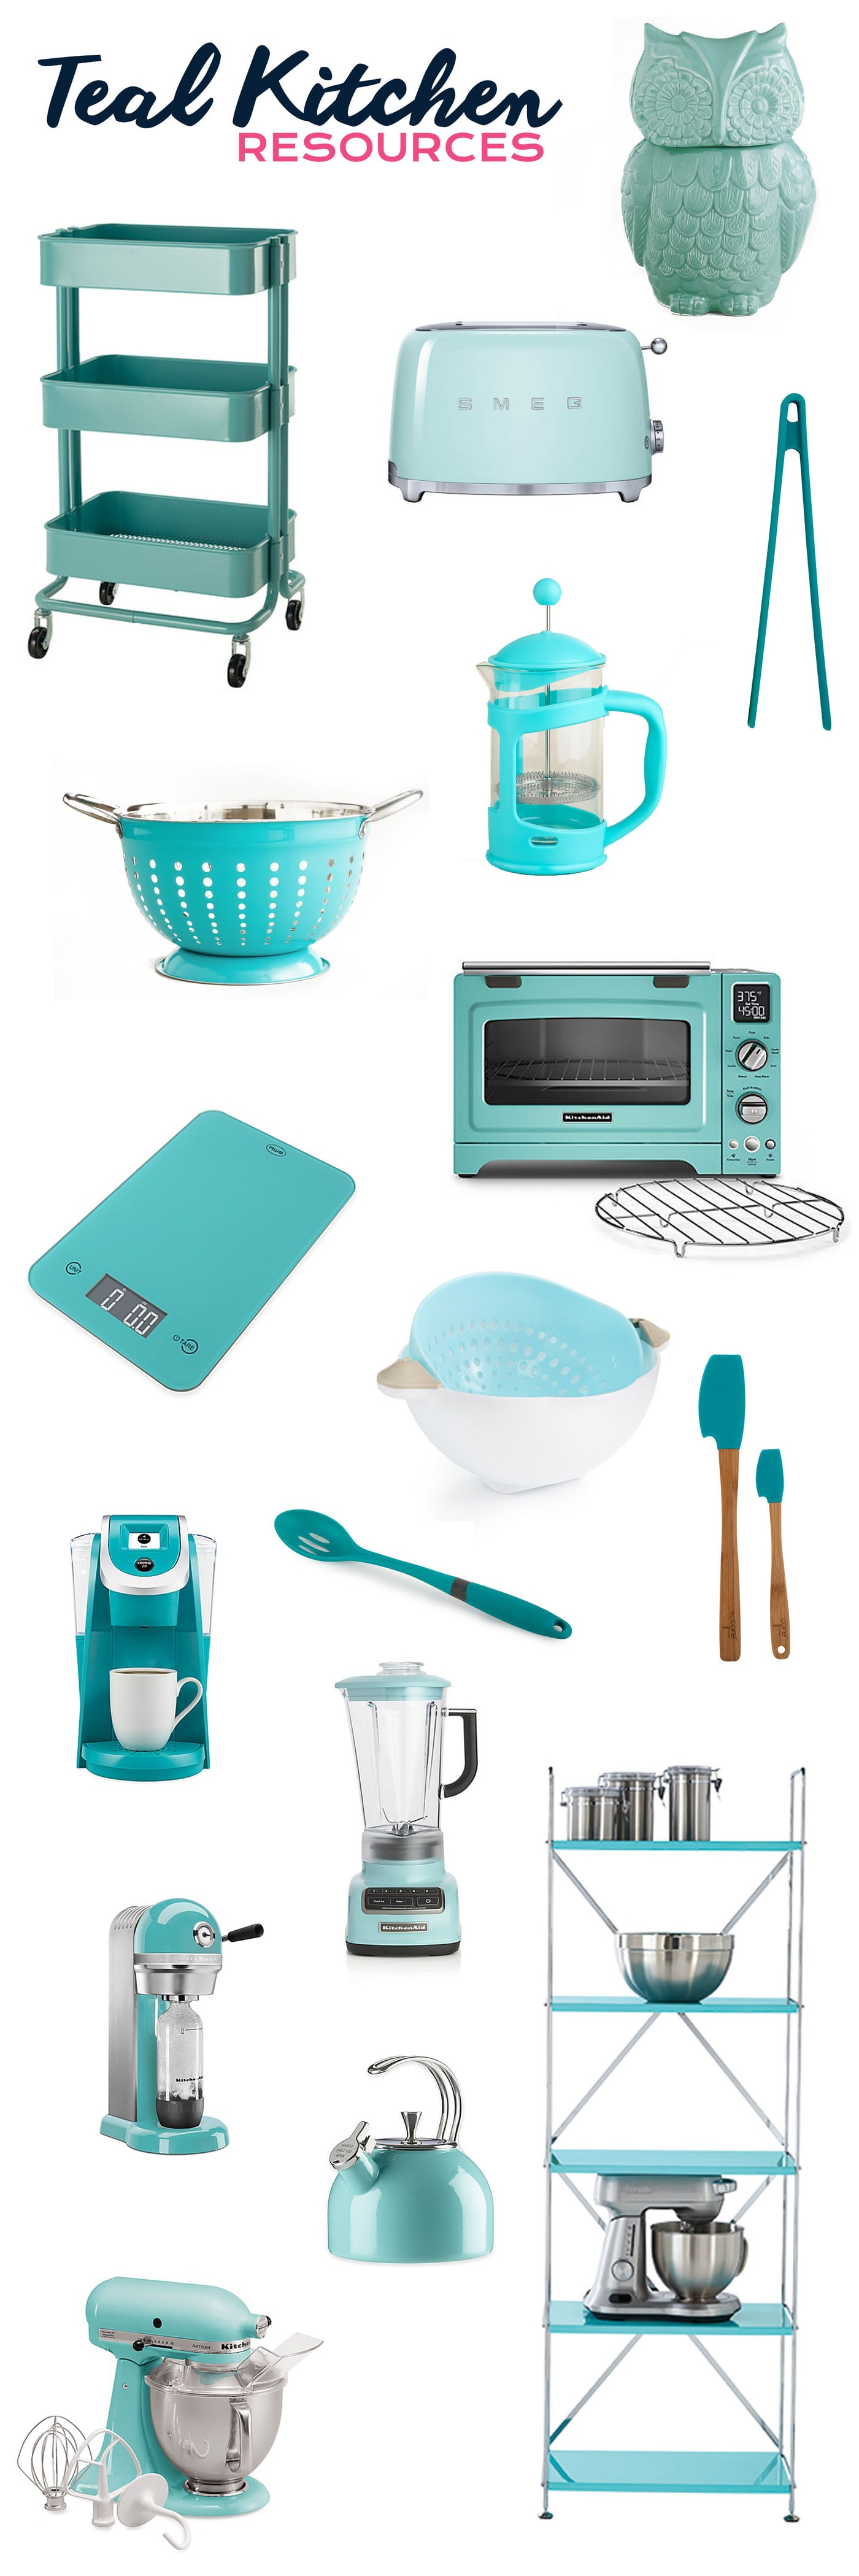 My Favorite Resources For Teal Kitchens Choosing Figs